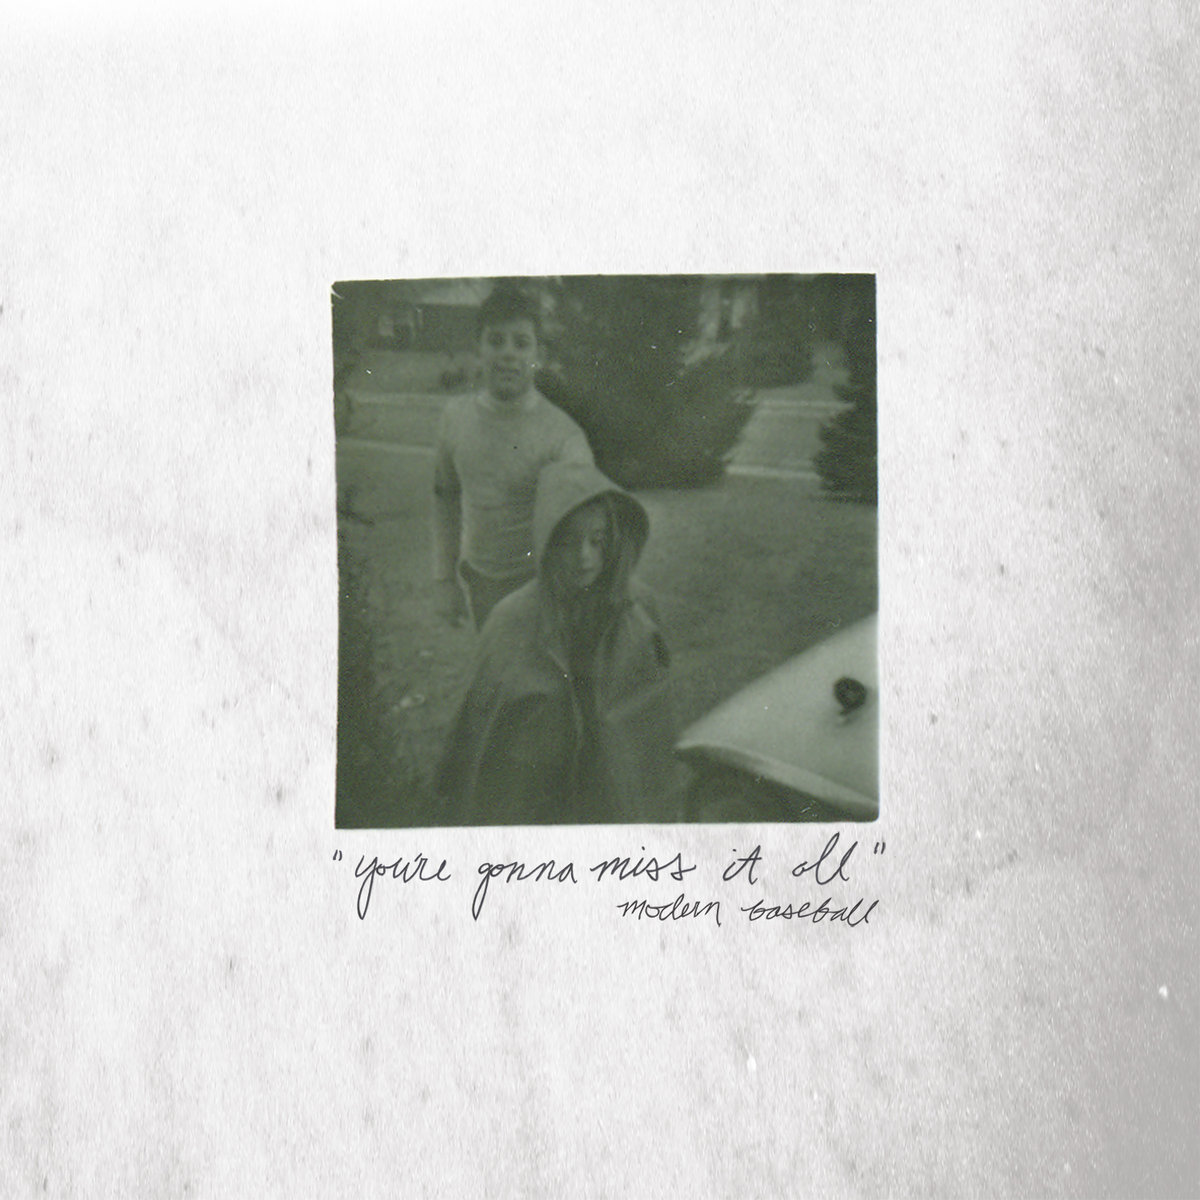 Modern Baseball - You're Gonna Miss It All LP / Tape